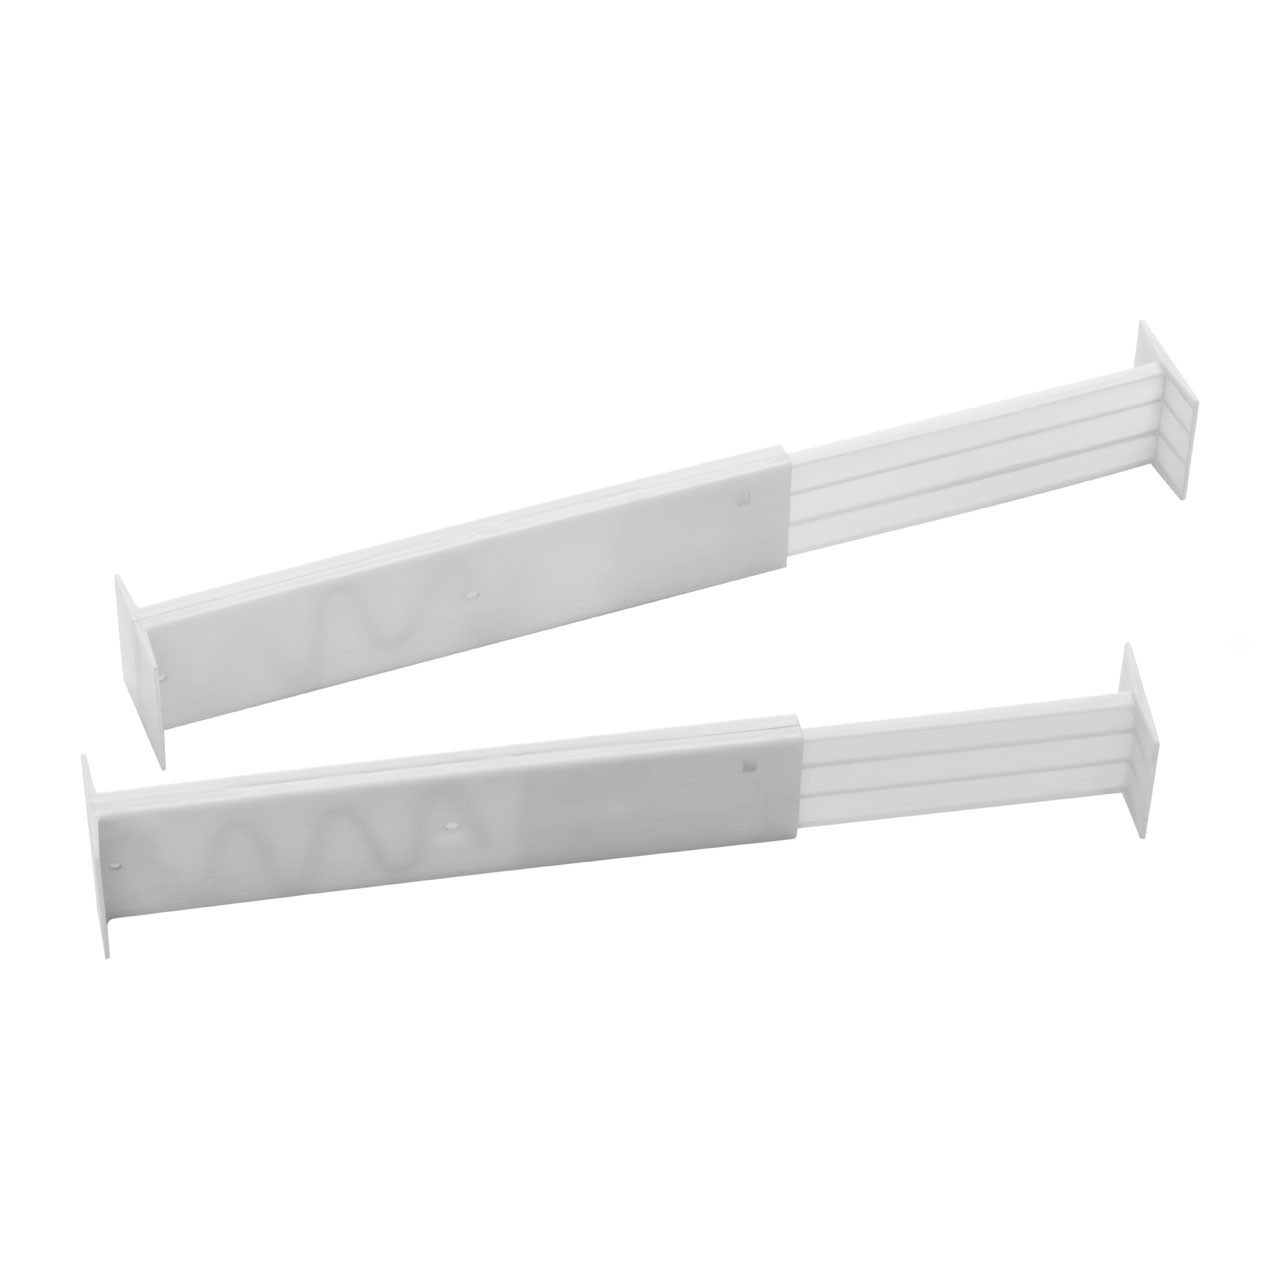 Drawer Dividers - White, Set of 2